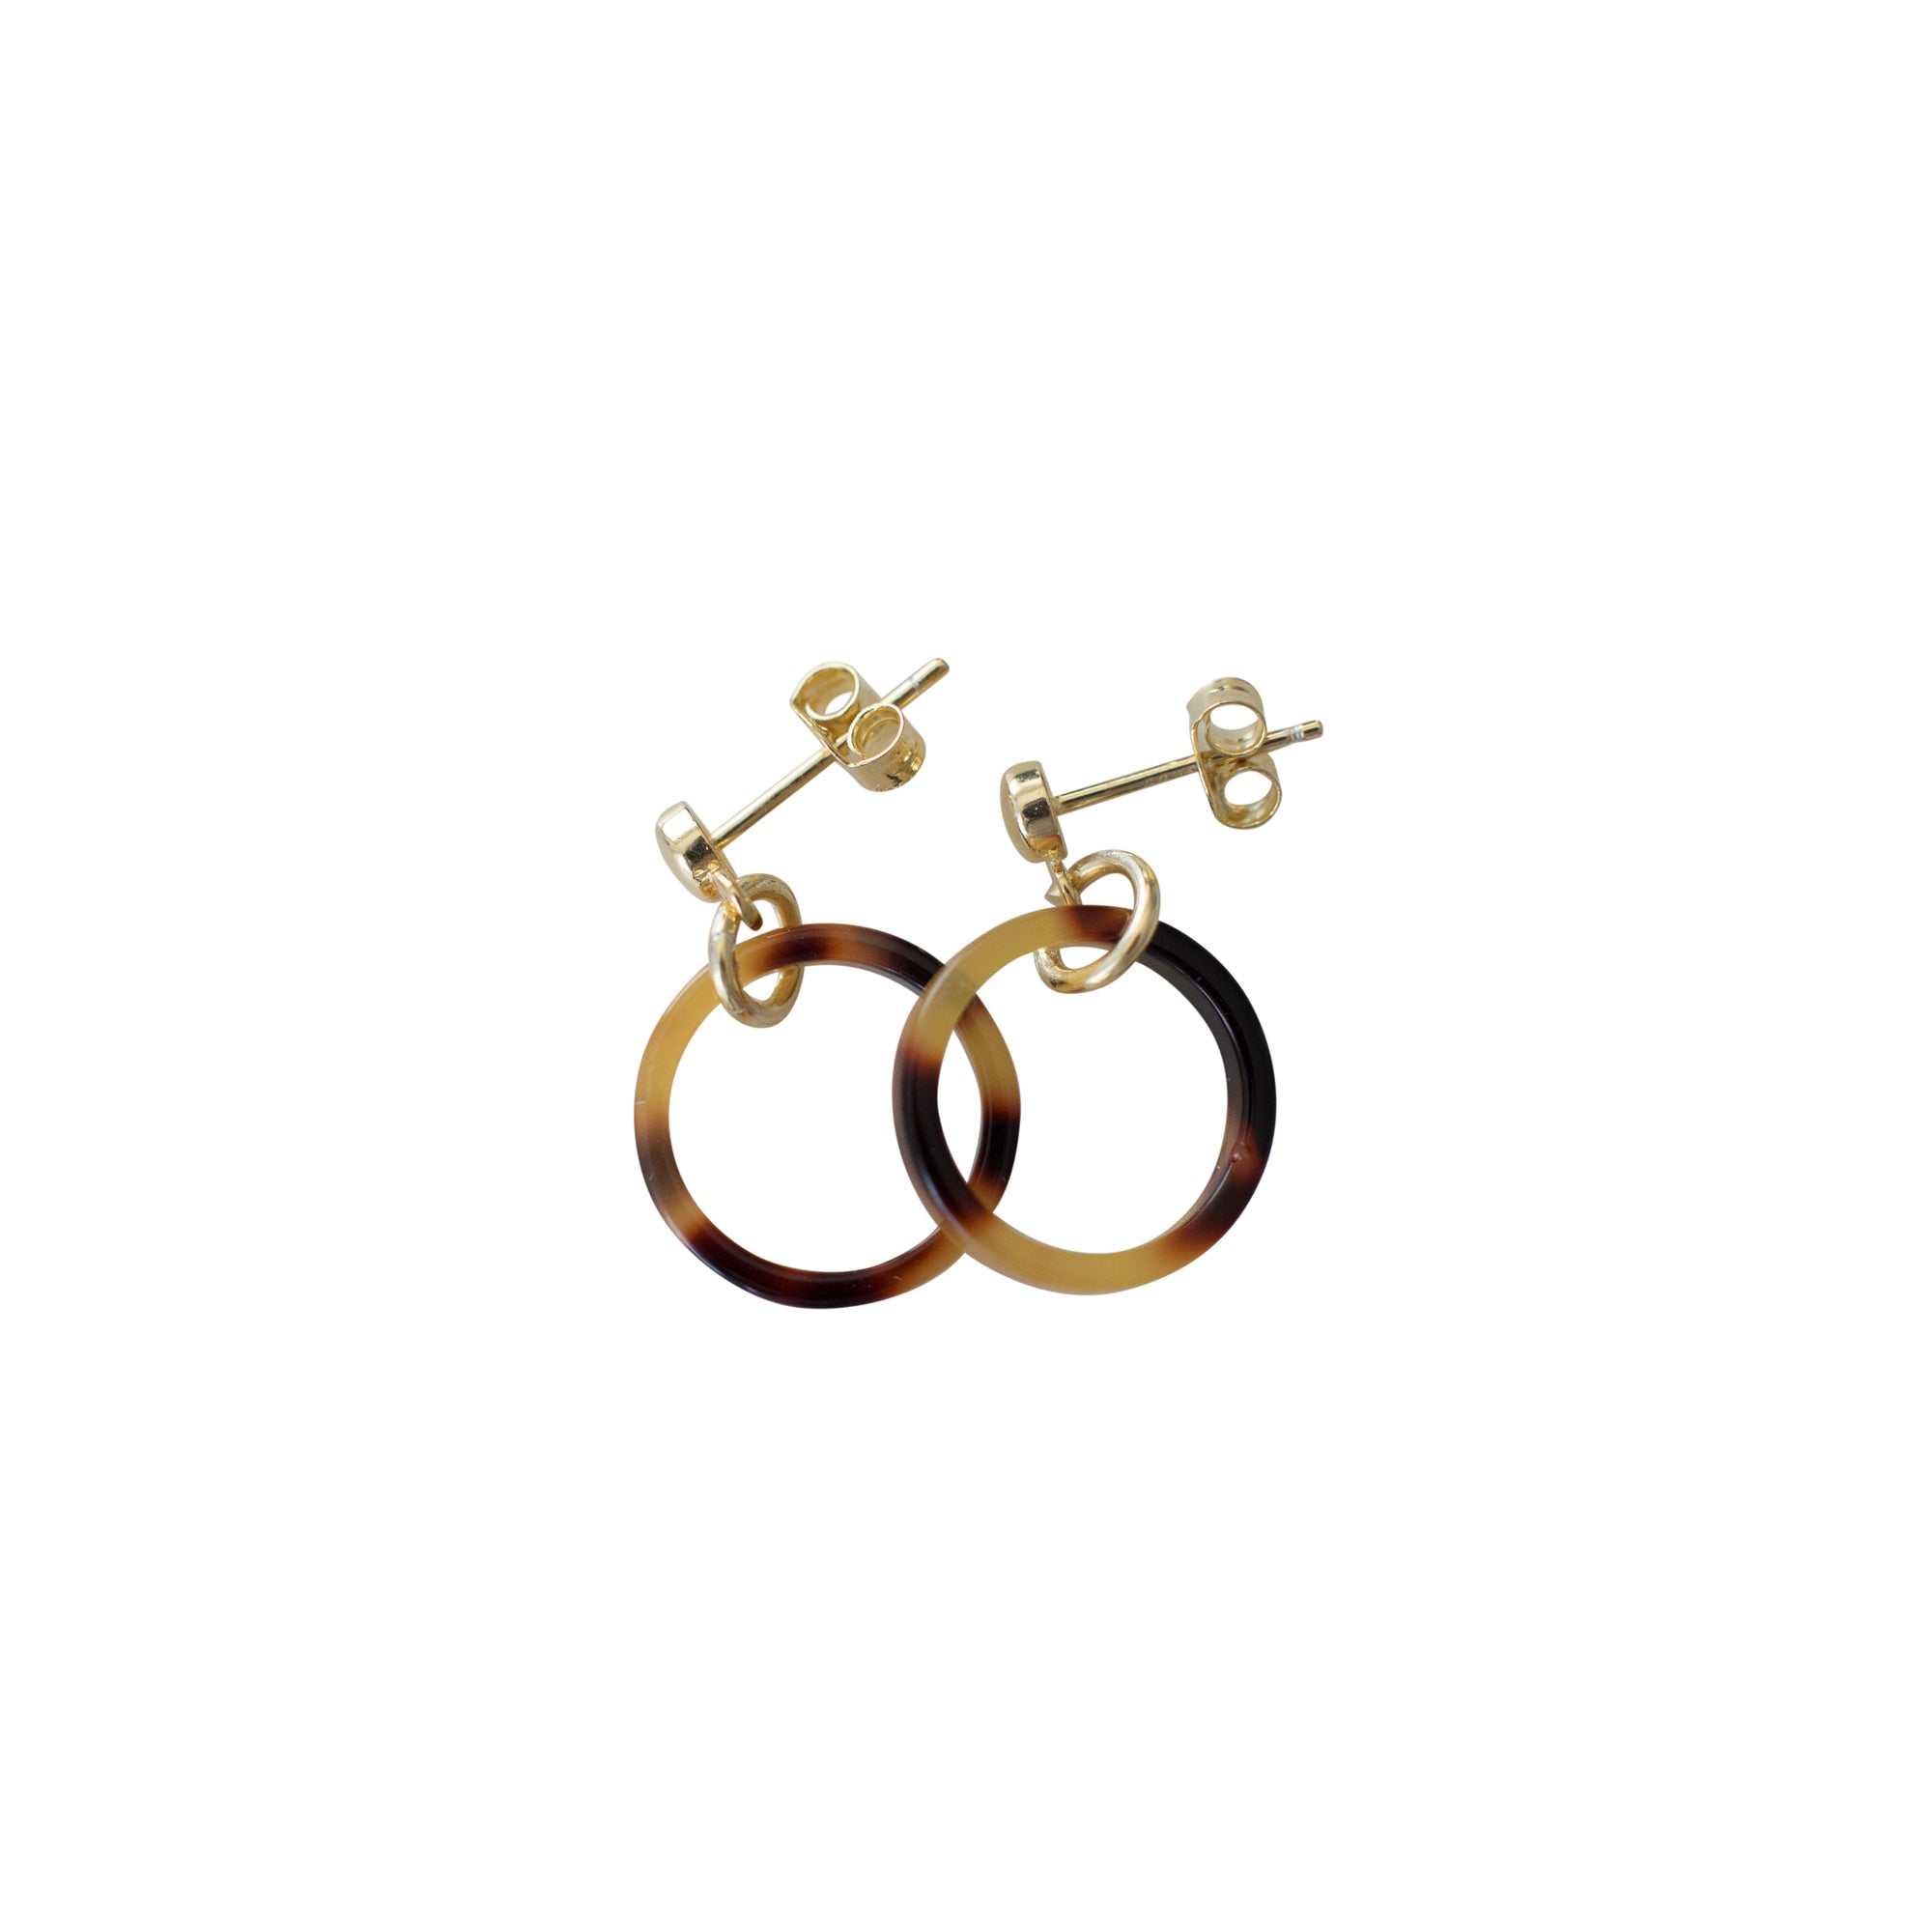 Sophie -  Little Tort Hoops - Dark / Gold - Paper Plane - SOPHIE Store - NZ Stockist - Jewellery